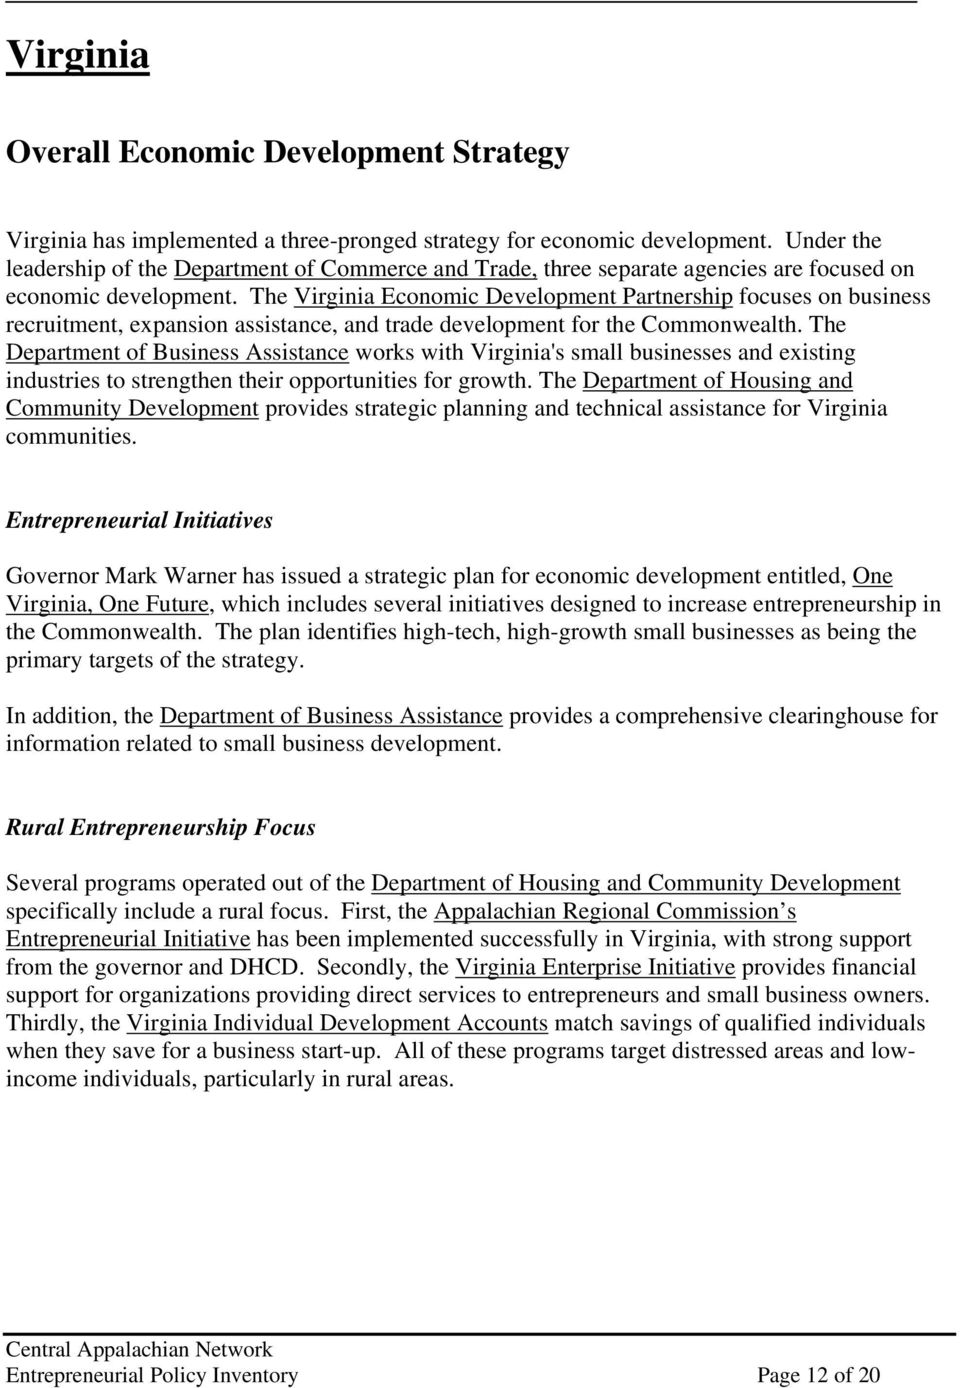 The Virginia Economic Development Partnership focuses on business recruitment, expansion assistance, and trade development for the Commonwealth.